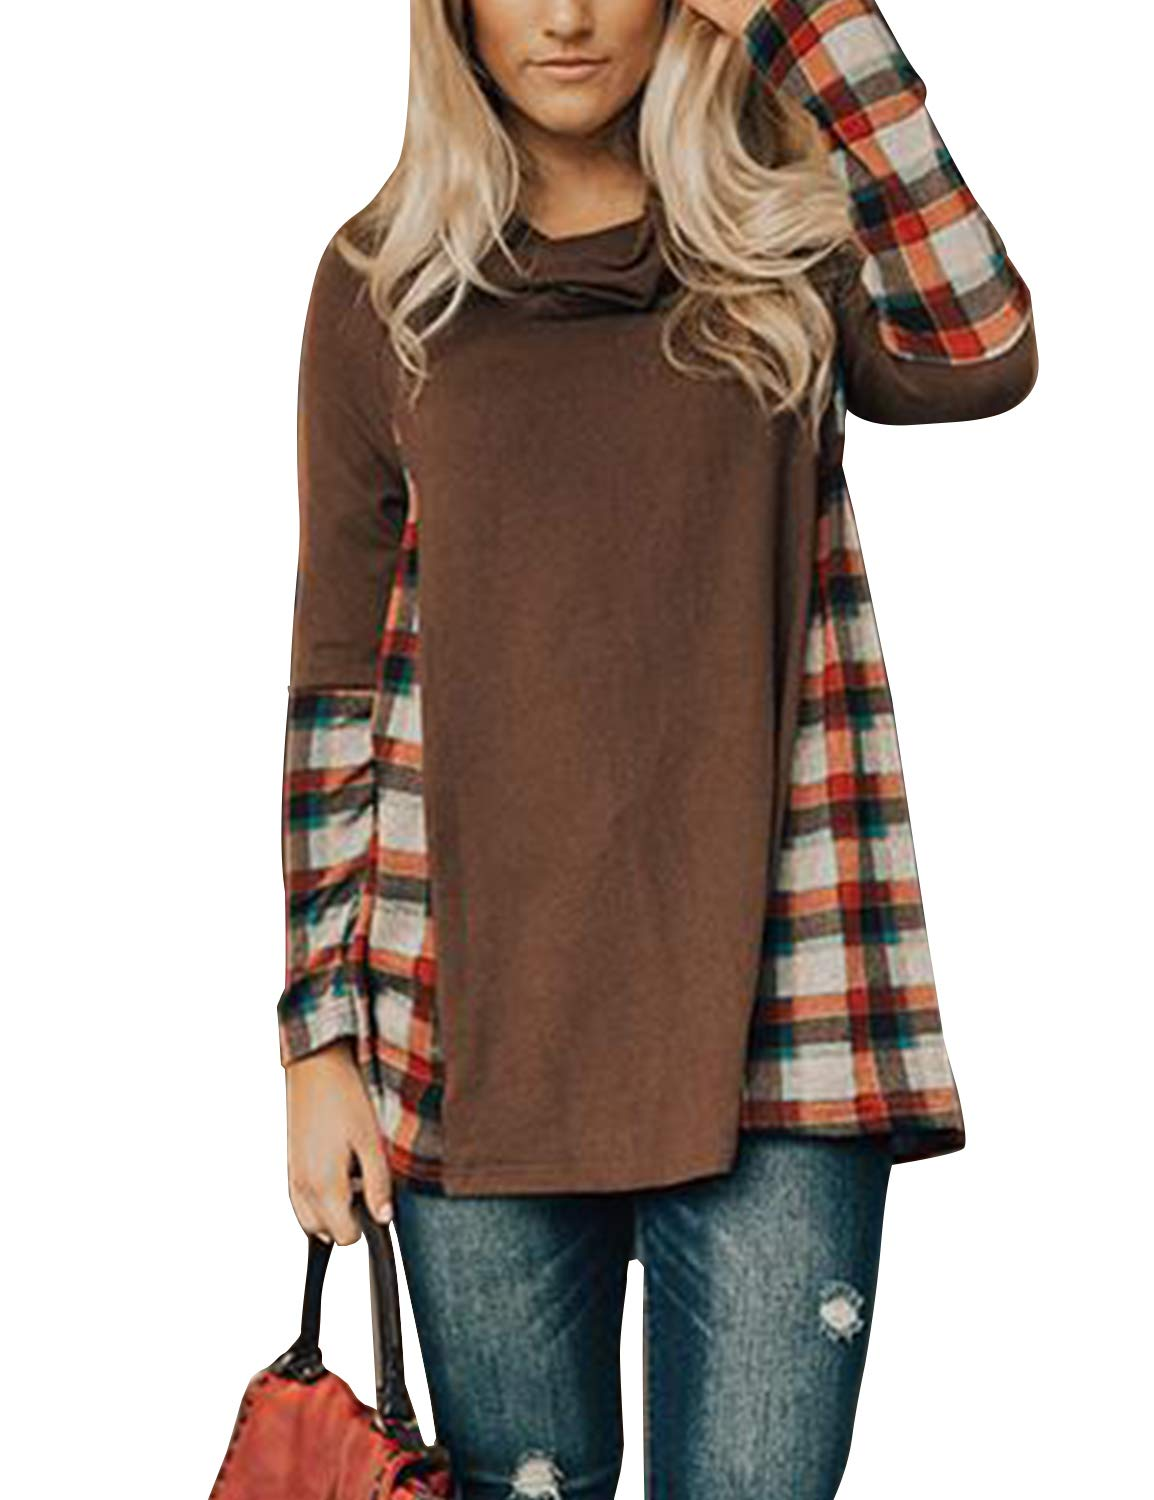 BMJL Women's Loose Plaid Blouse Turtle Neck Color Block Long Sleeve Top Brown